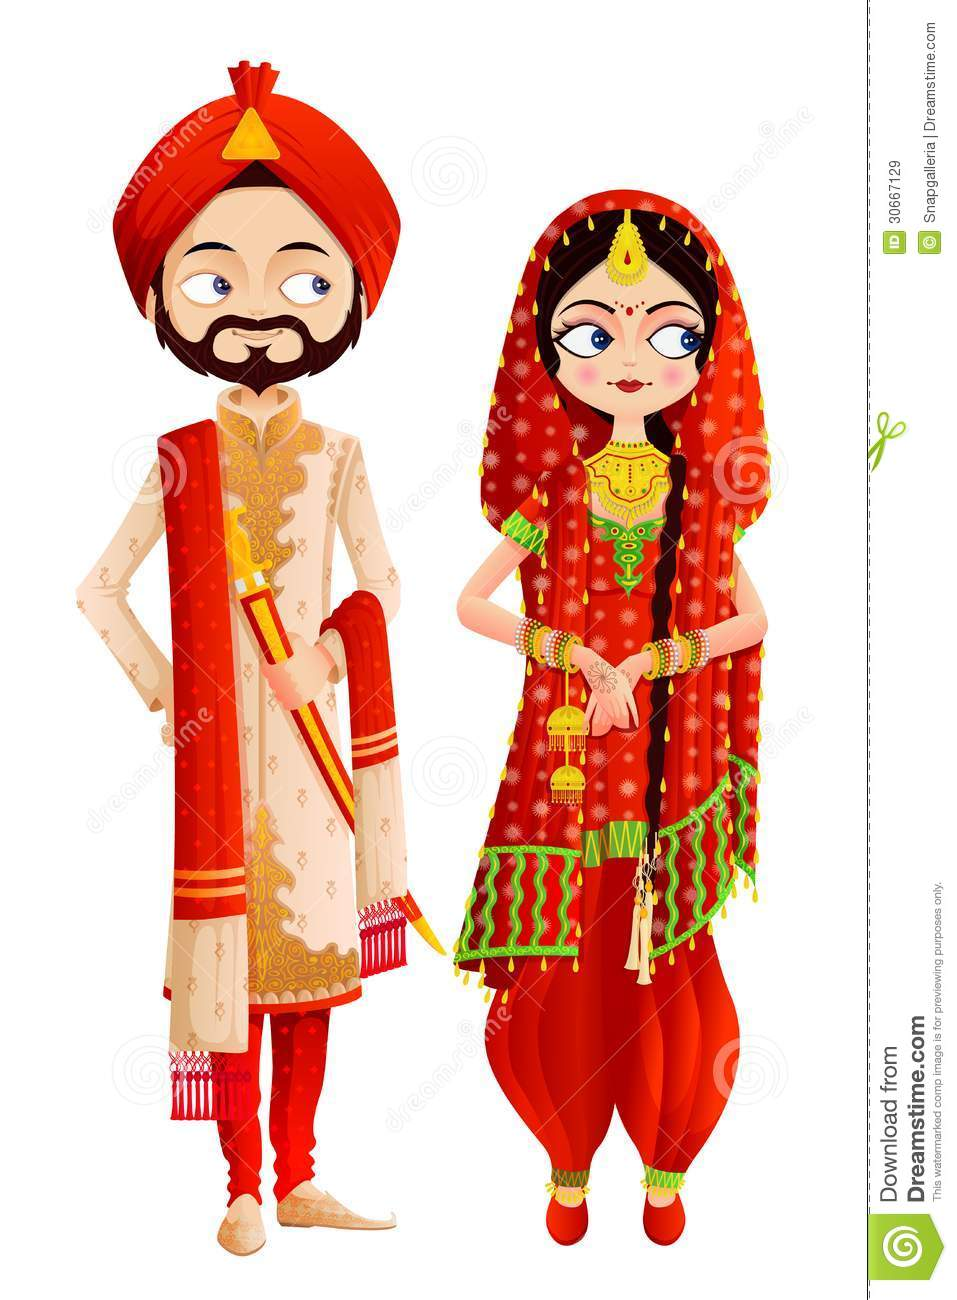 Sikh Wedding Couple - Download From Over 58 Million High Quality Stock  Photos, Images, Vectors. Sign up for FREE today. Image: 30667129